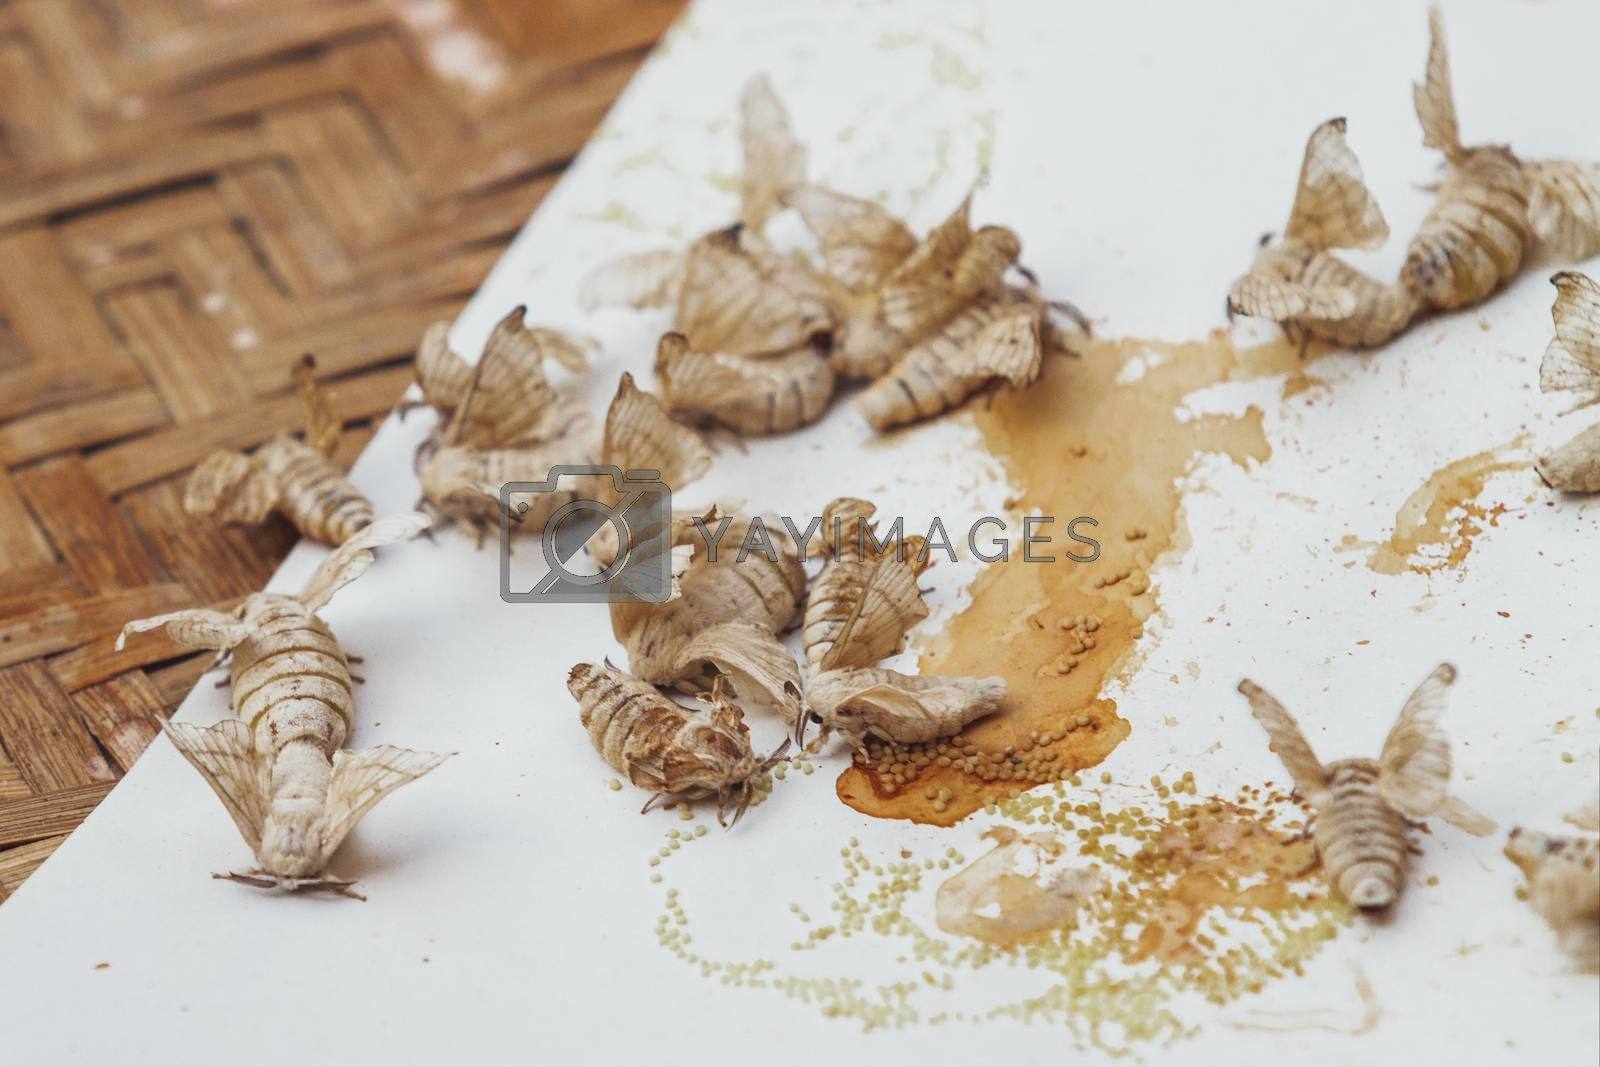 Silkworm butterflies. Close-up of insects suitable for fabric production. Bangkok, Thailand.